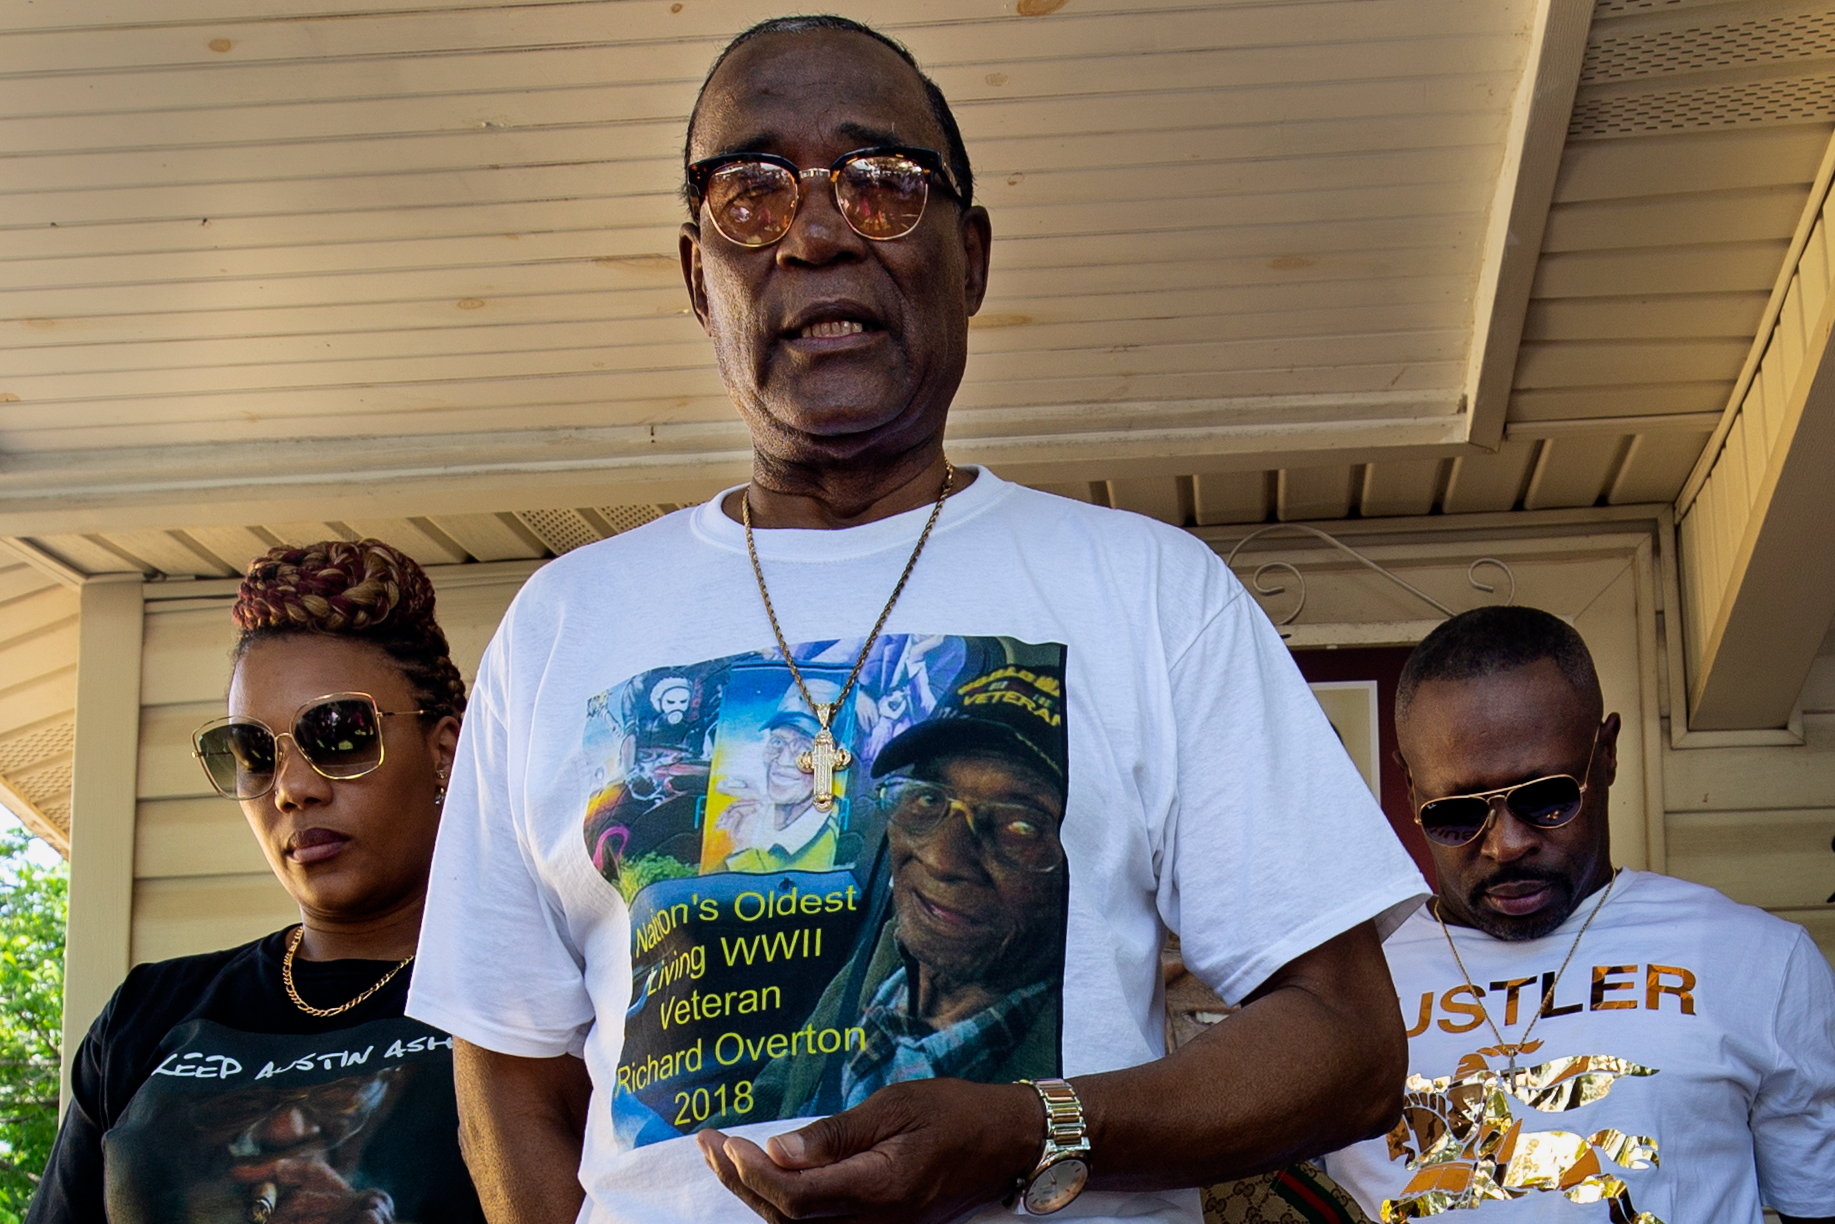 AUSTIN, TEXAS. May 11, 2018. Family members lead a prayer before beginning a celebration honoring Richard Overton, America's oldest living WWII veteran, for his 112th birthday. Montinique Monroe for KUT News